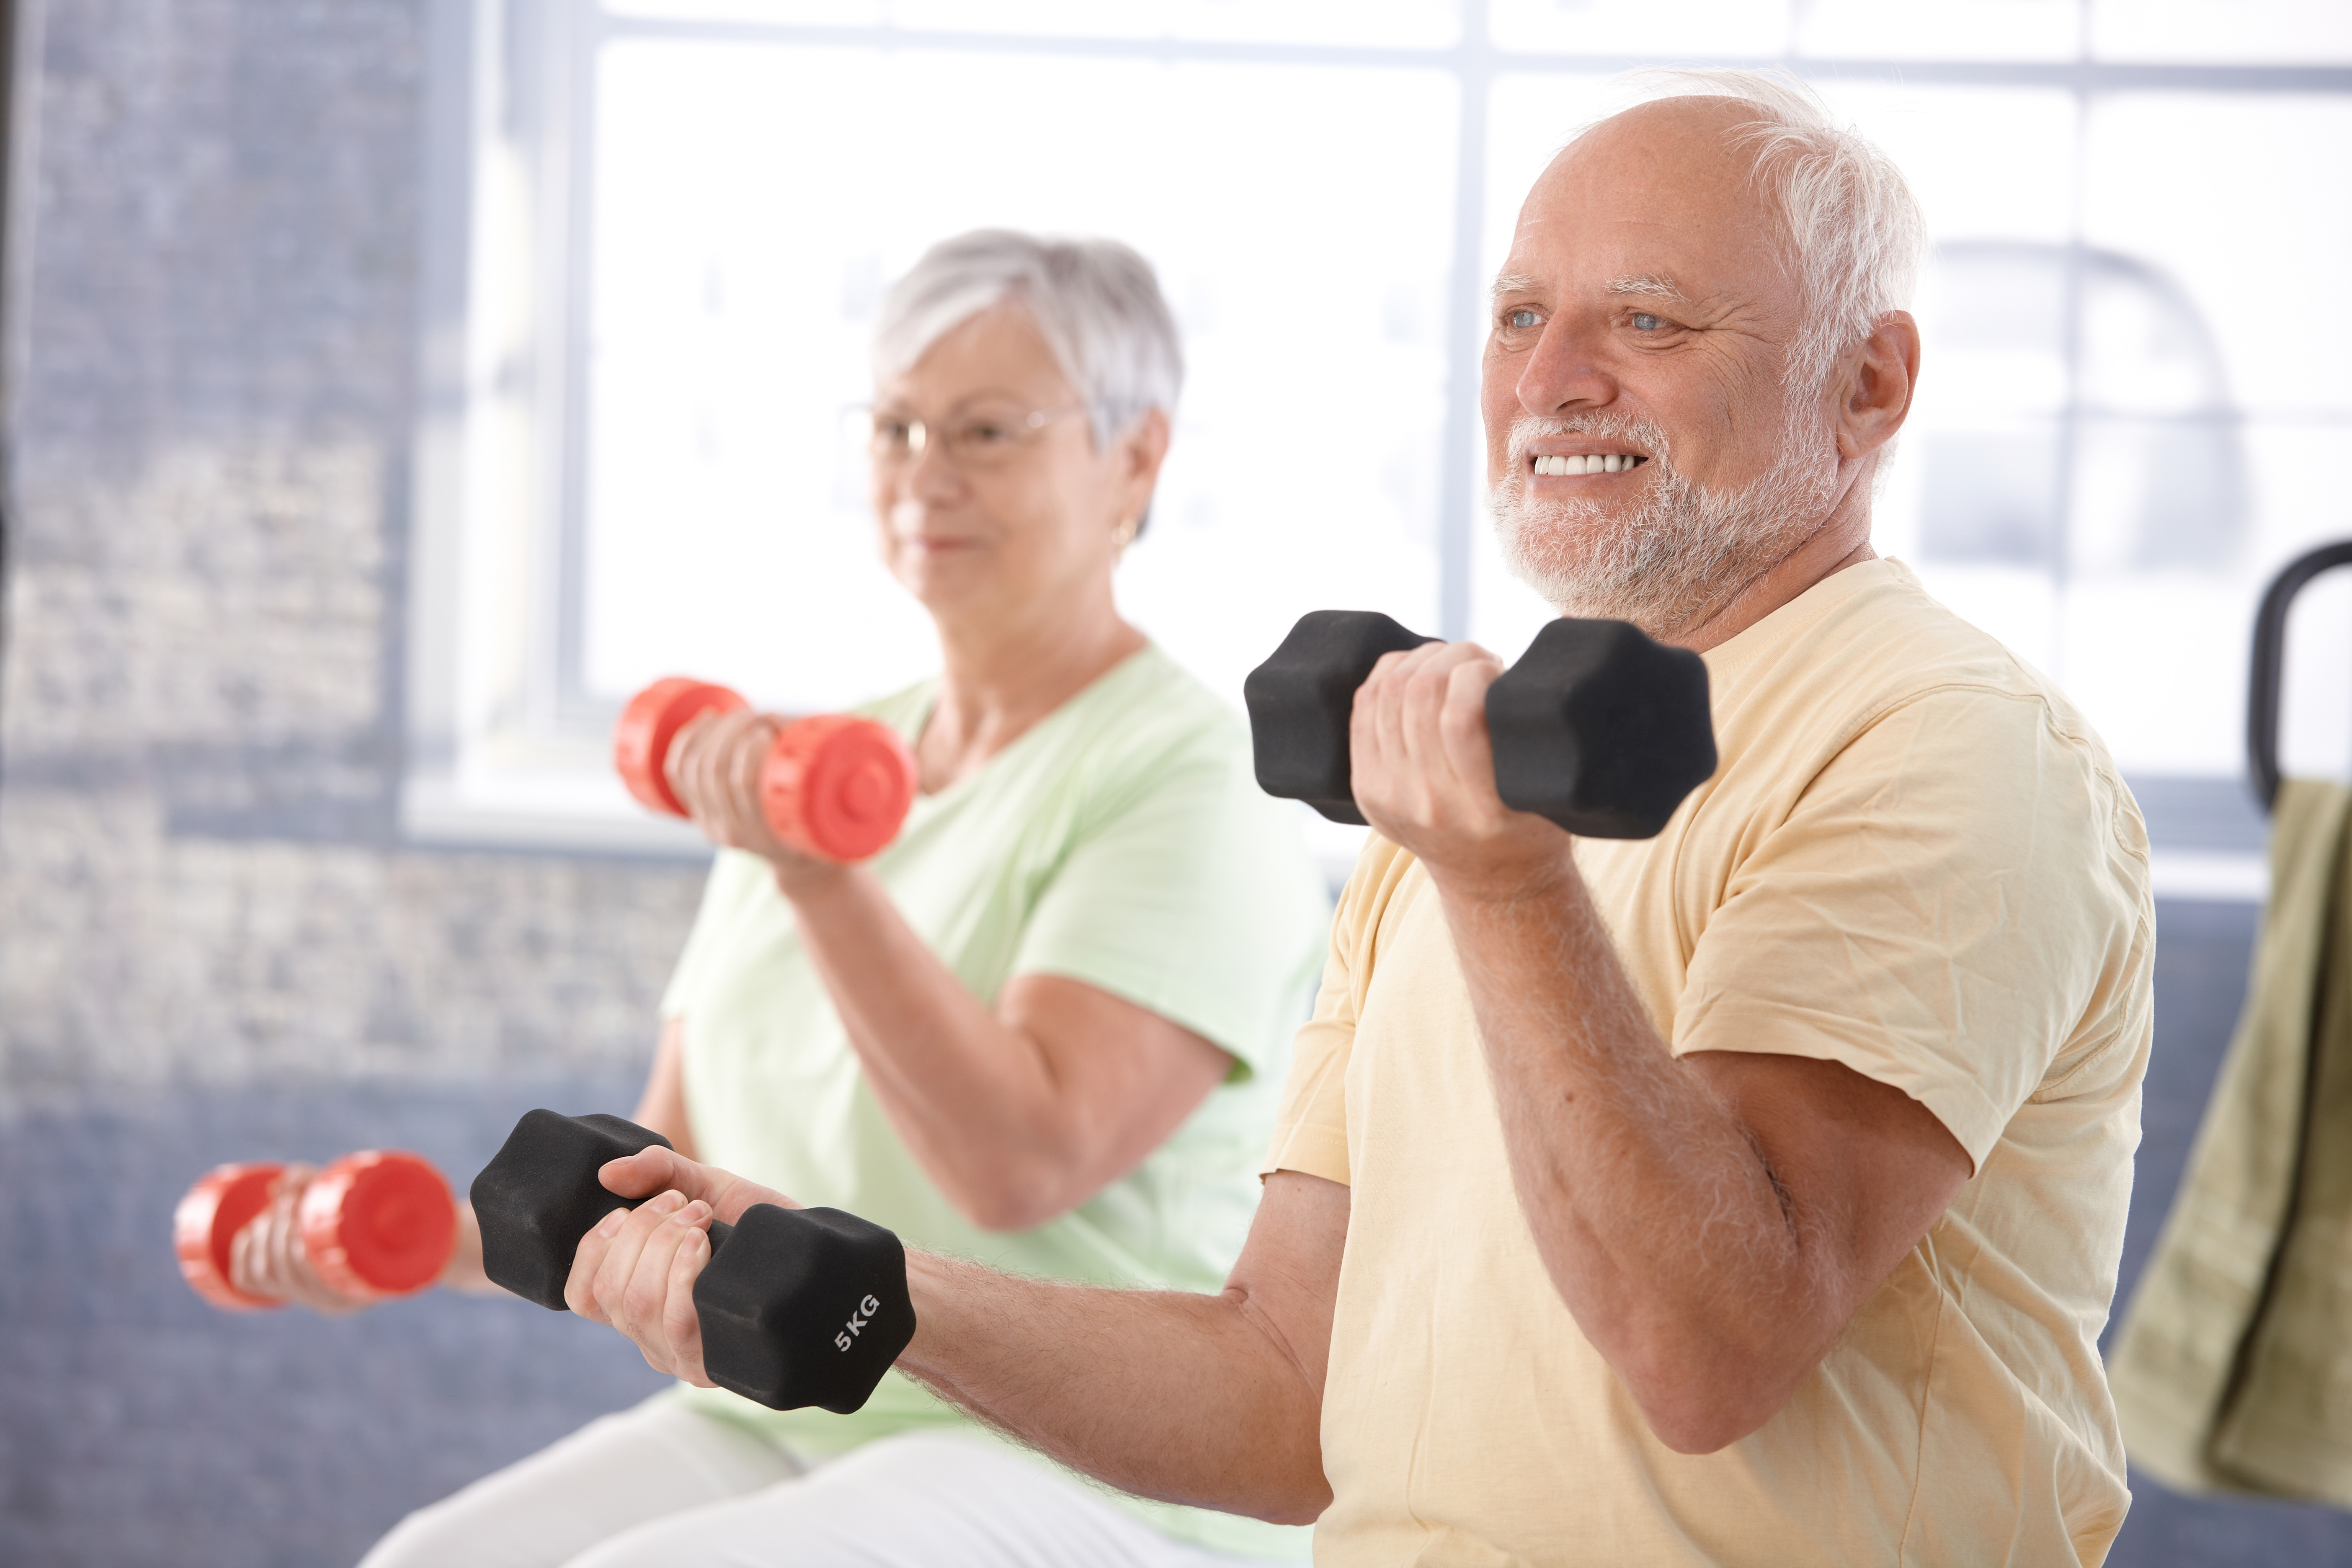 Can Structured Physical Activity Reduce The Risk Of Mobility Disability Among Frail Older Adults